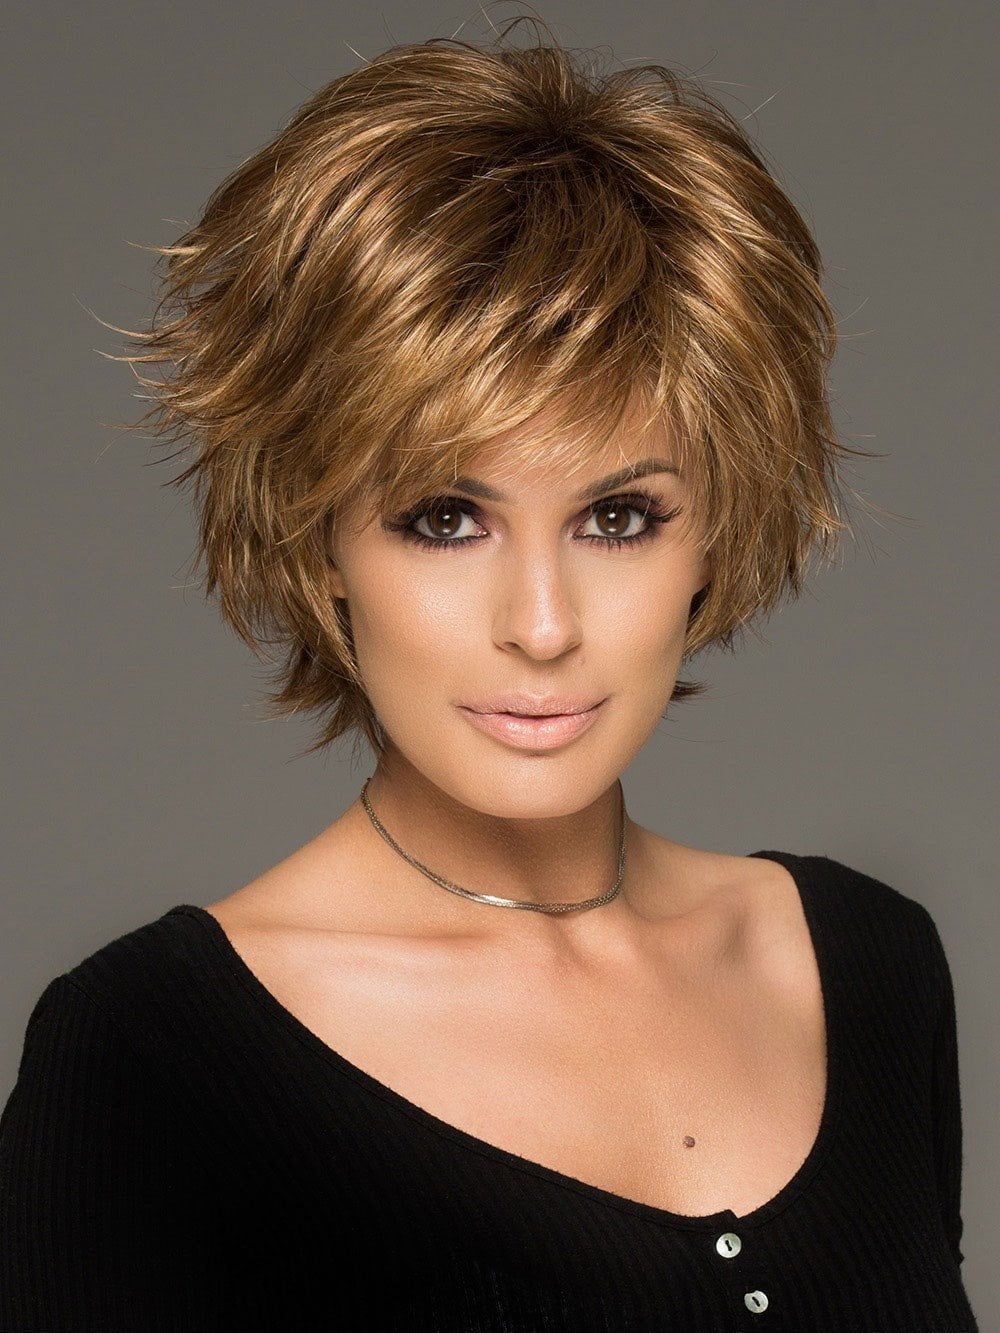 Nori By Noriko Short Wig Wigs Com The Wig Experts